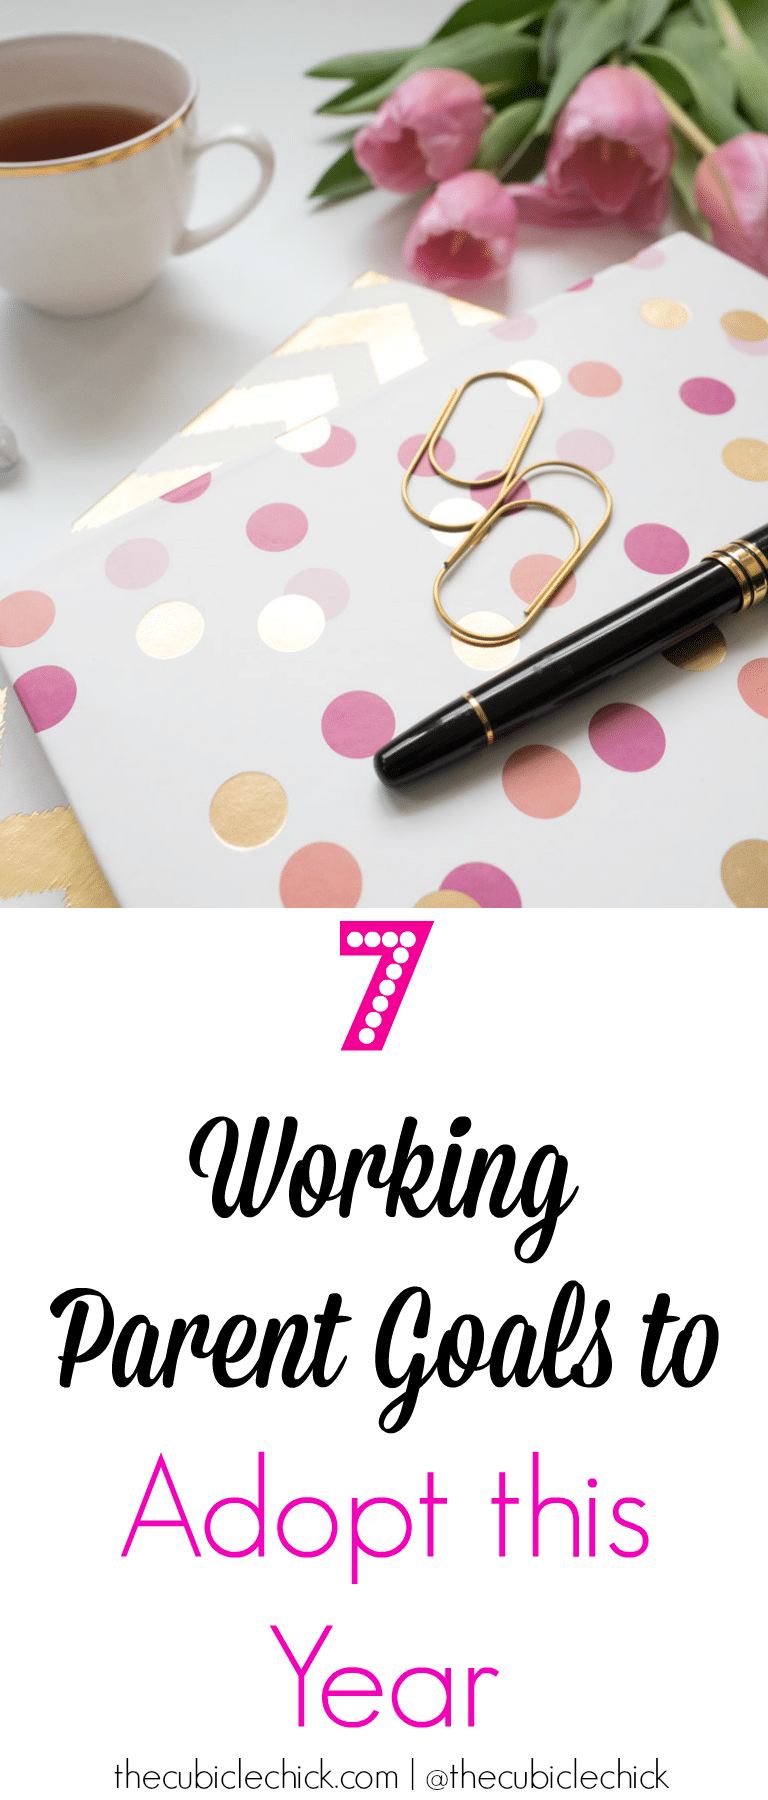 Now that we are fully entrenched in the new year, contributor The Corporate Chick is sharing seven working parent goals that we should all adopt in 2017.